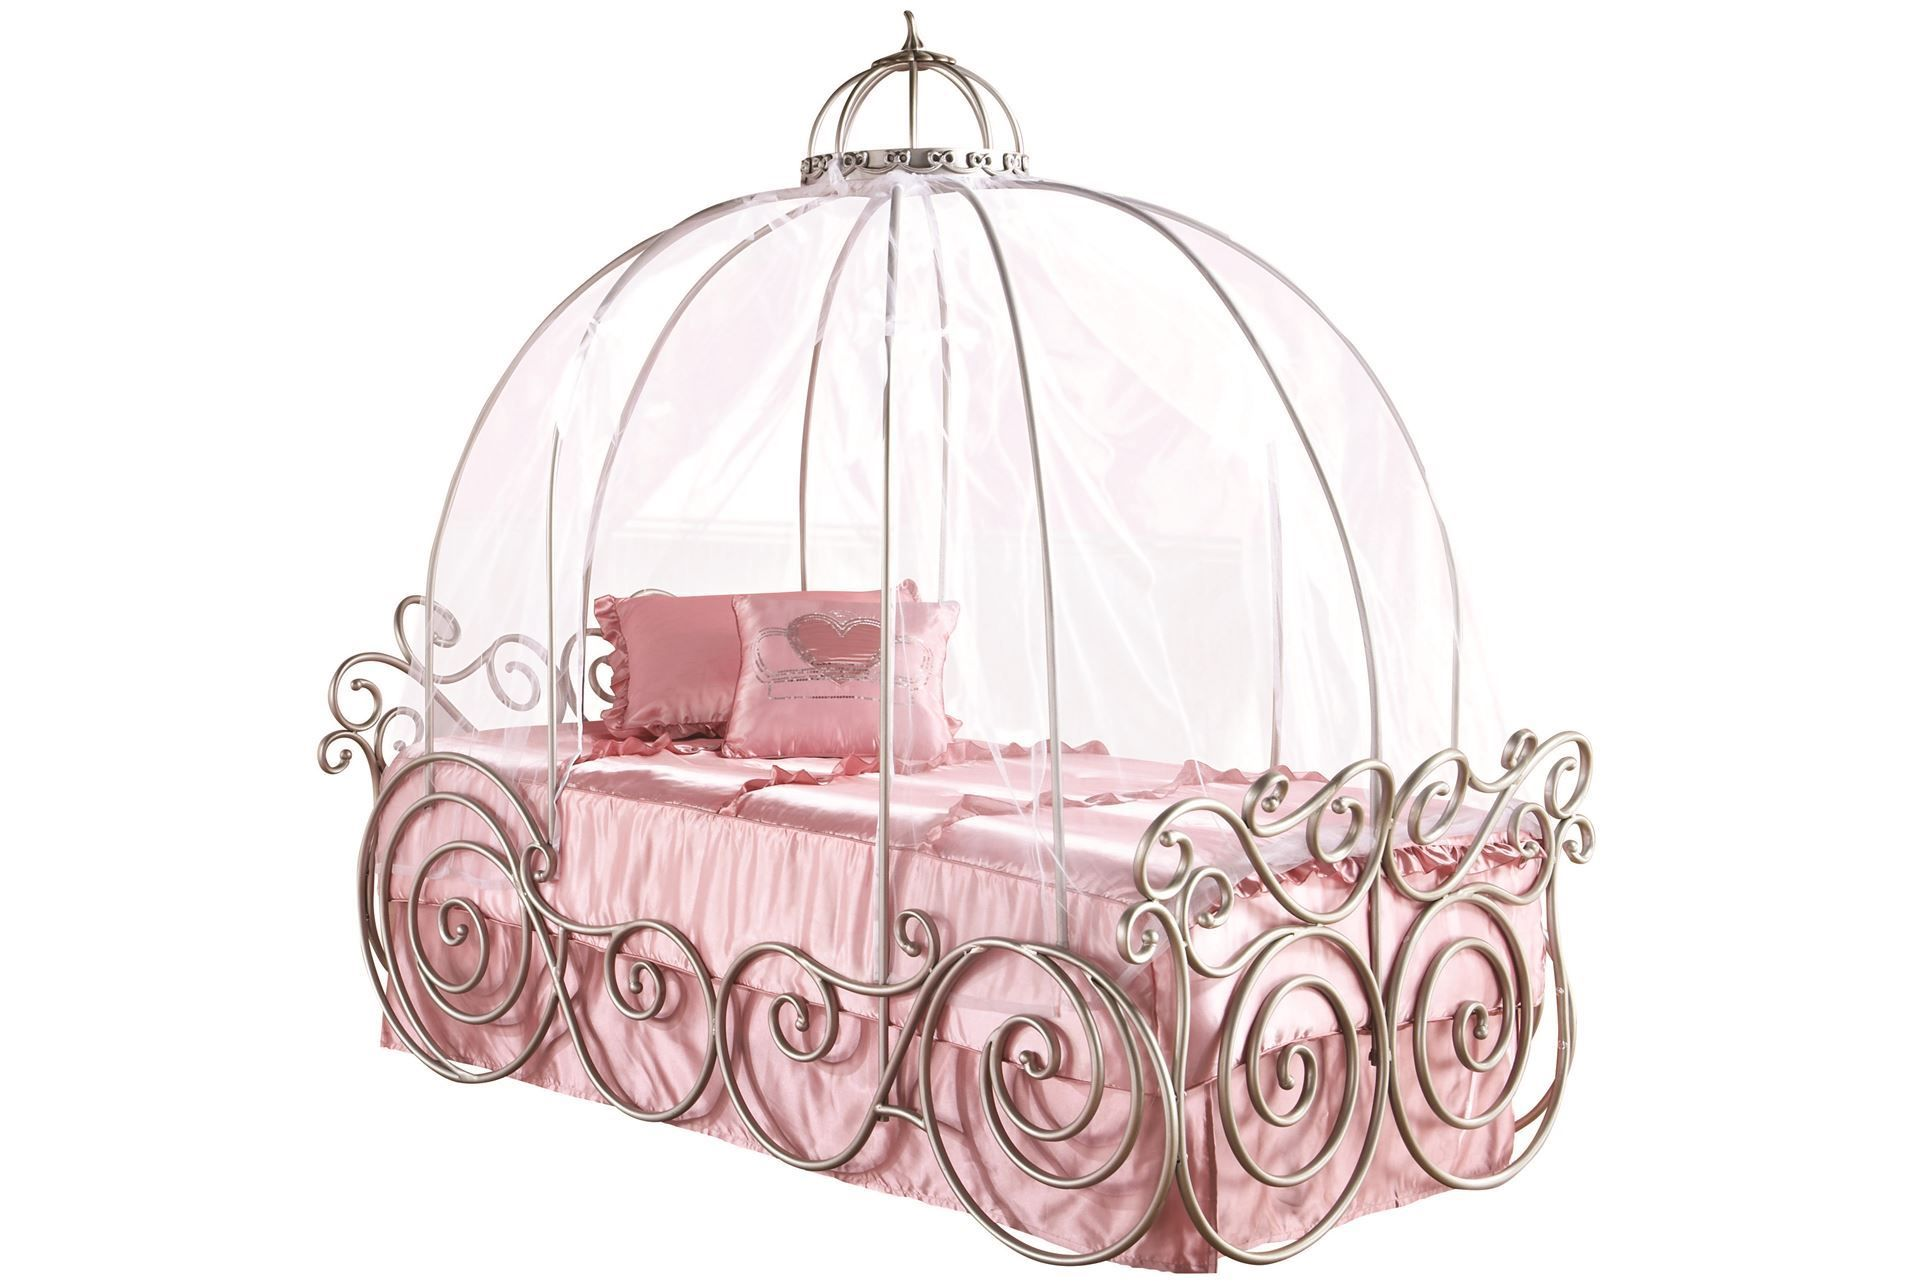 Disney Princess Twin Carriage Bed Living Spaces Cute Furniture Frame Tenda Fiber Untuk Dome Enchanting For Kid Bedroom Ideas Silver Iron With